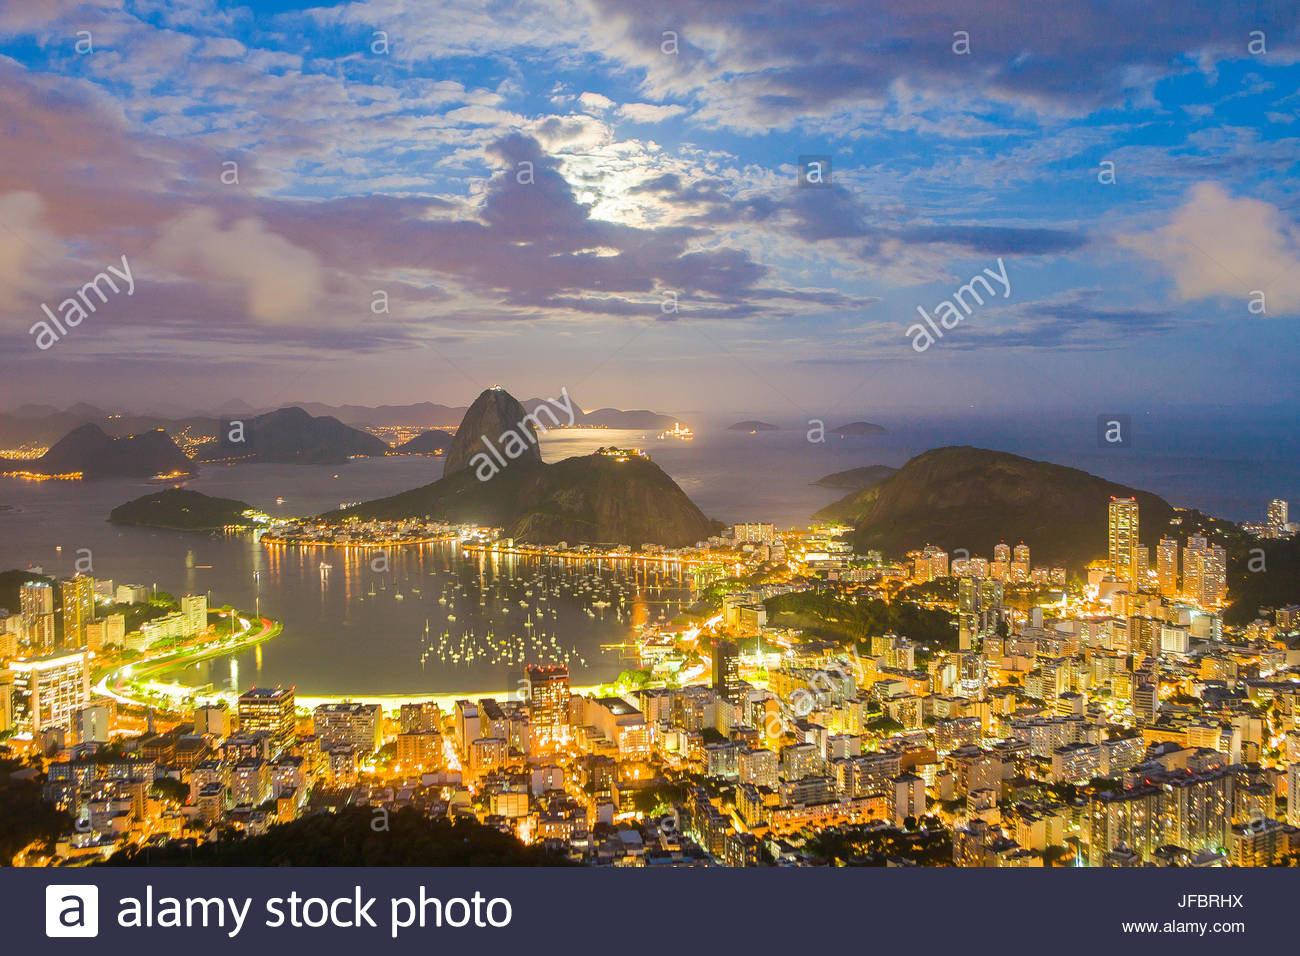 Aerial view overlooking the entire city of Rio de Janeiro including Sugarloaf Mountain in Brasil. - Stock Image